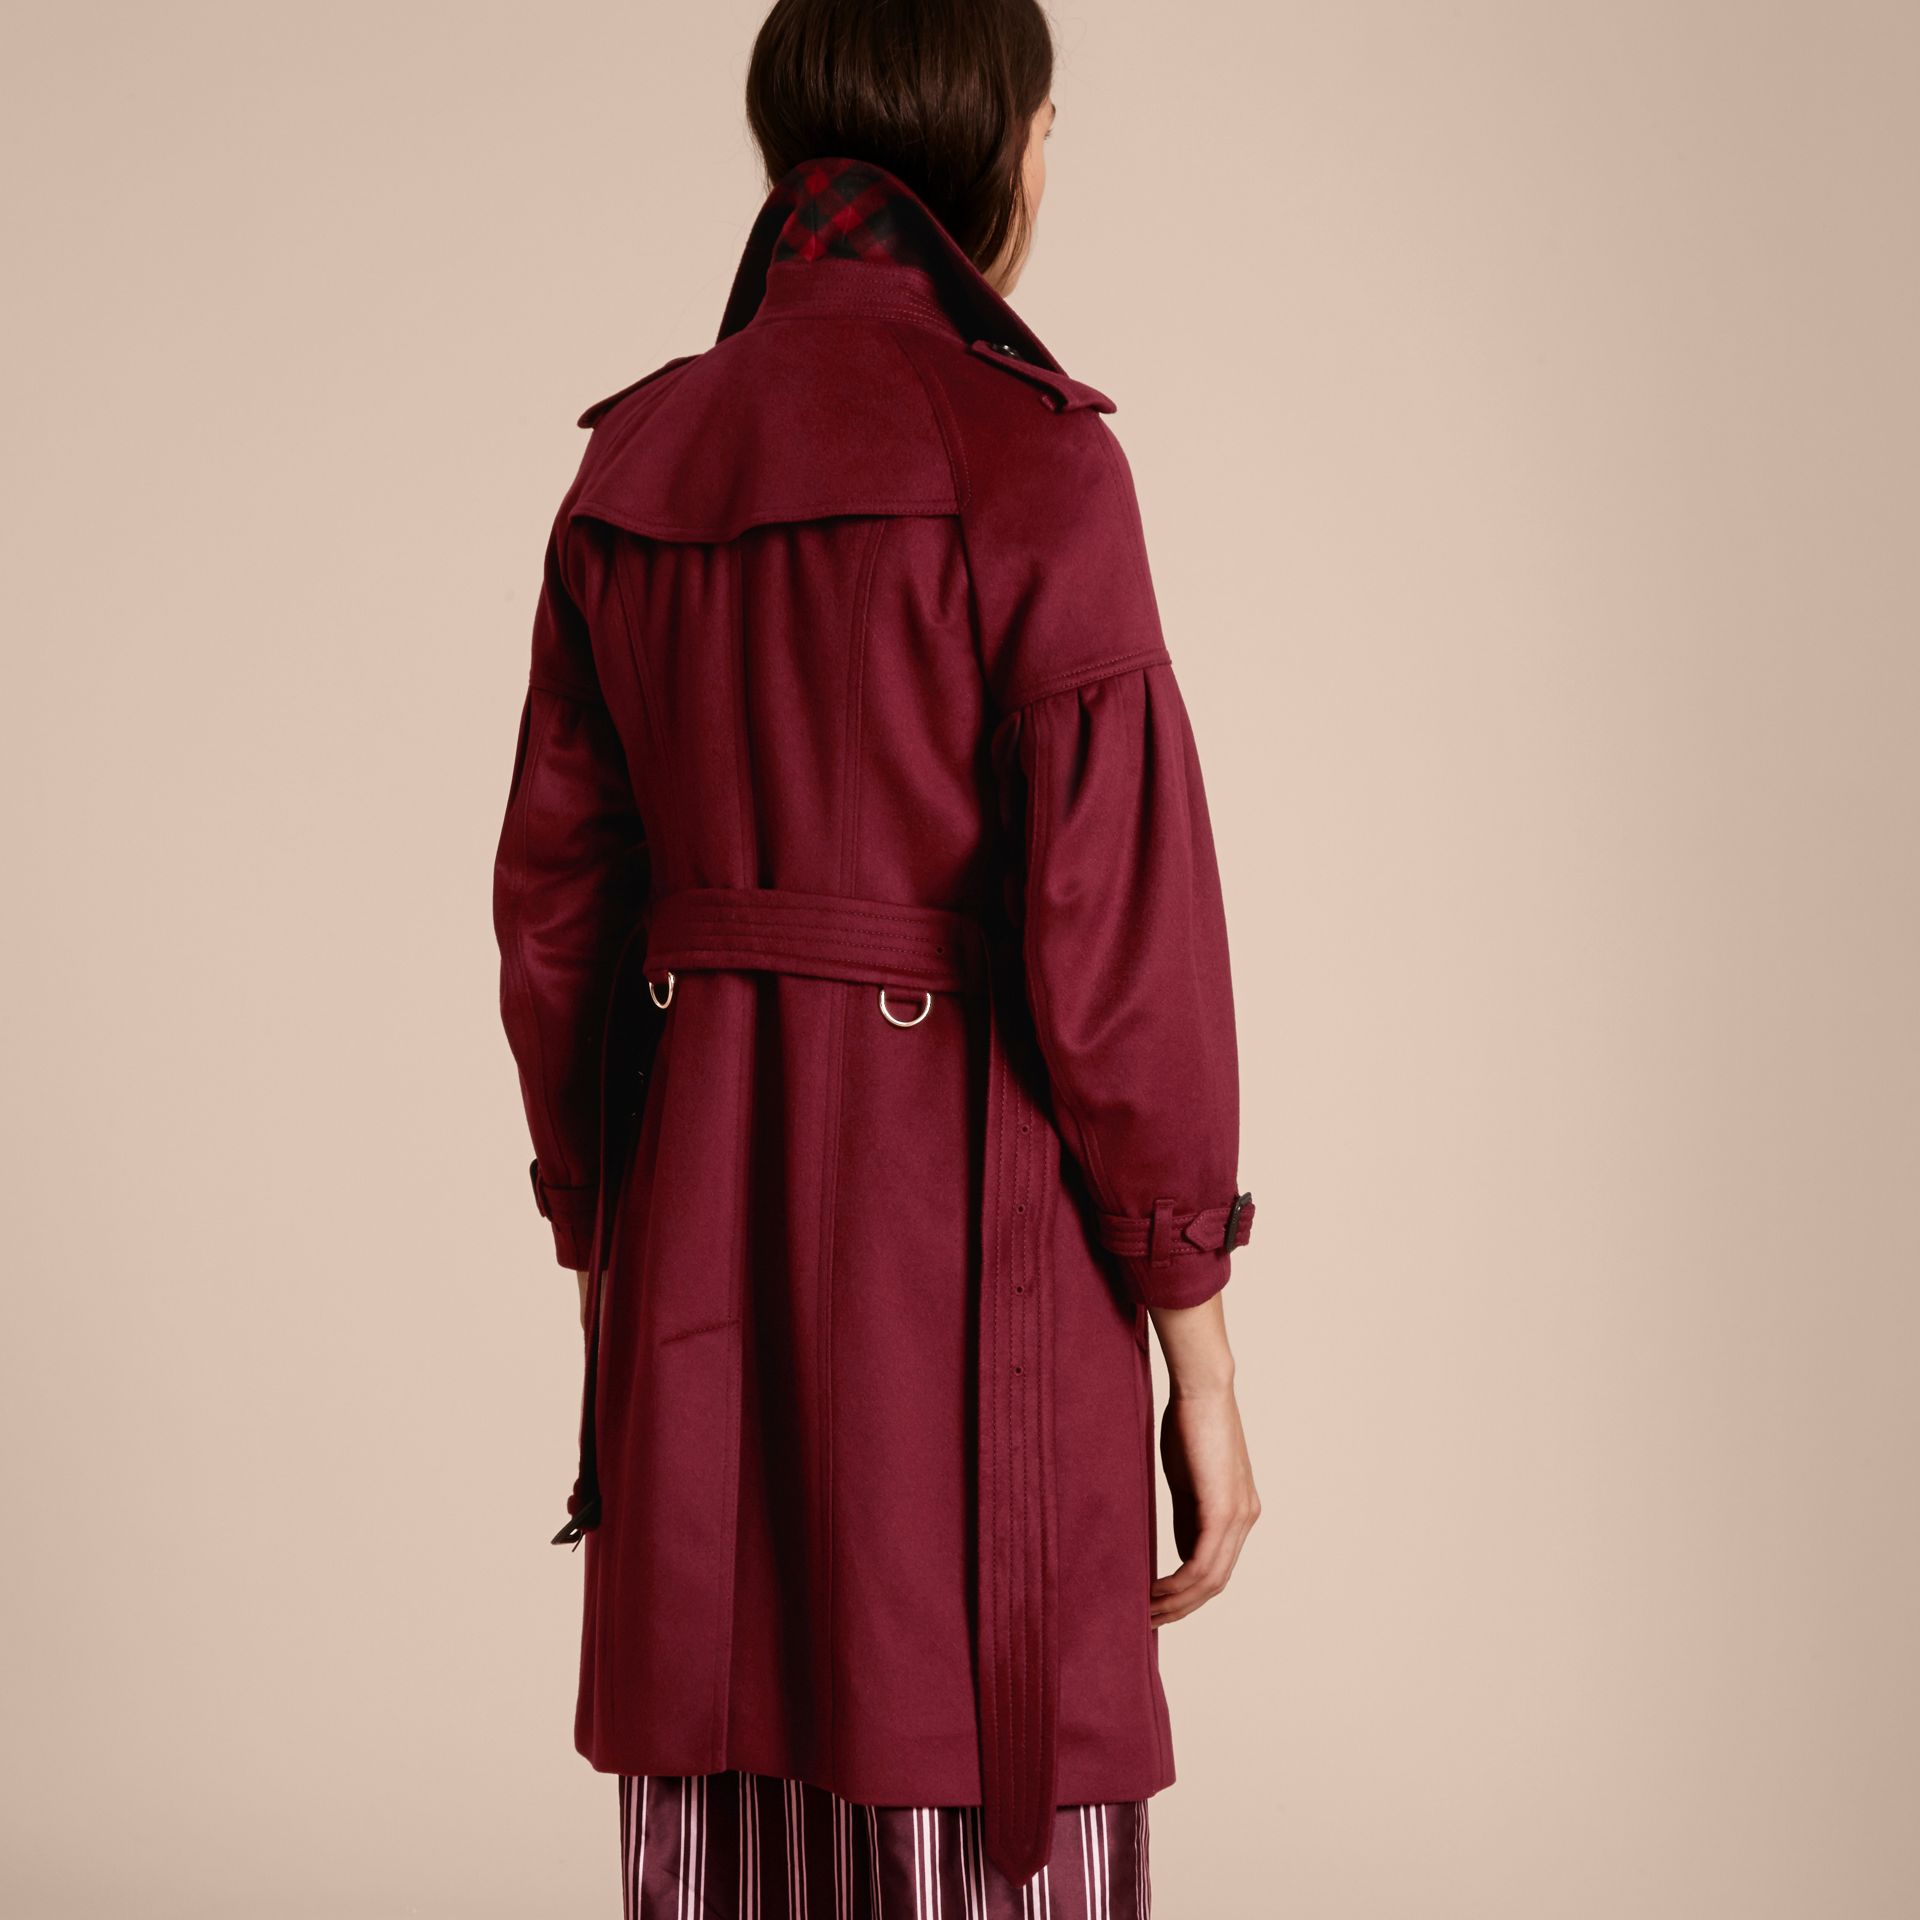 Burgundy Cashmere Trench Coat with Puff Sleeves Burgundy - gallery image 3